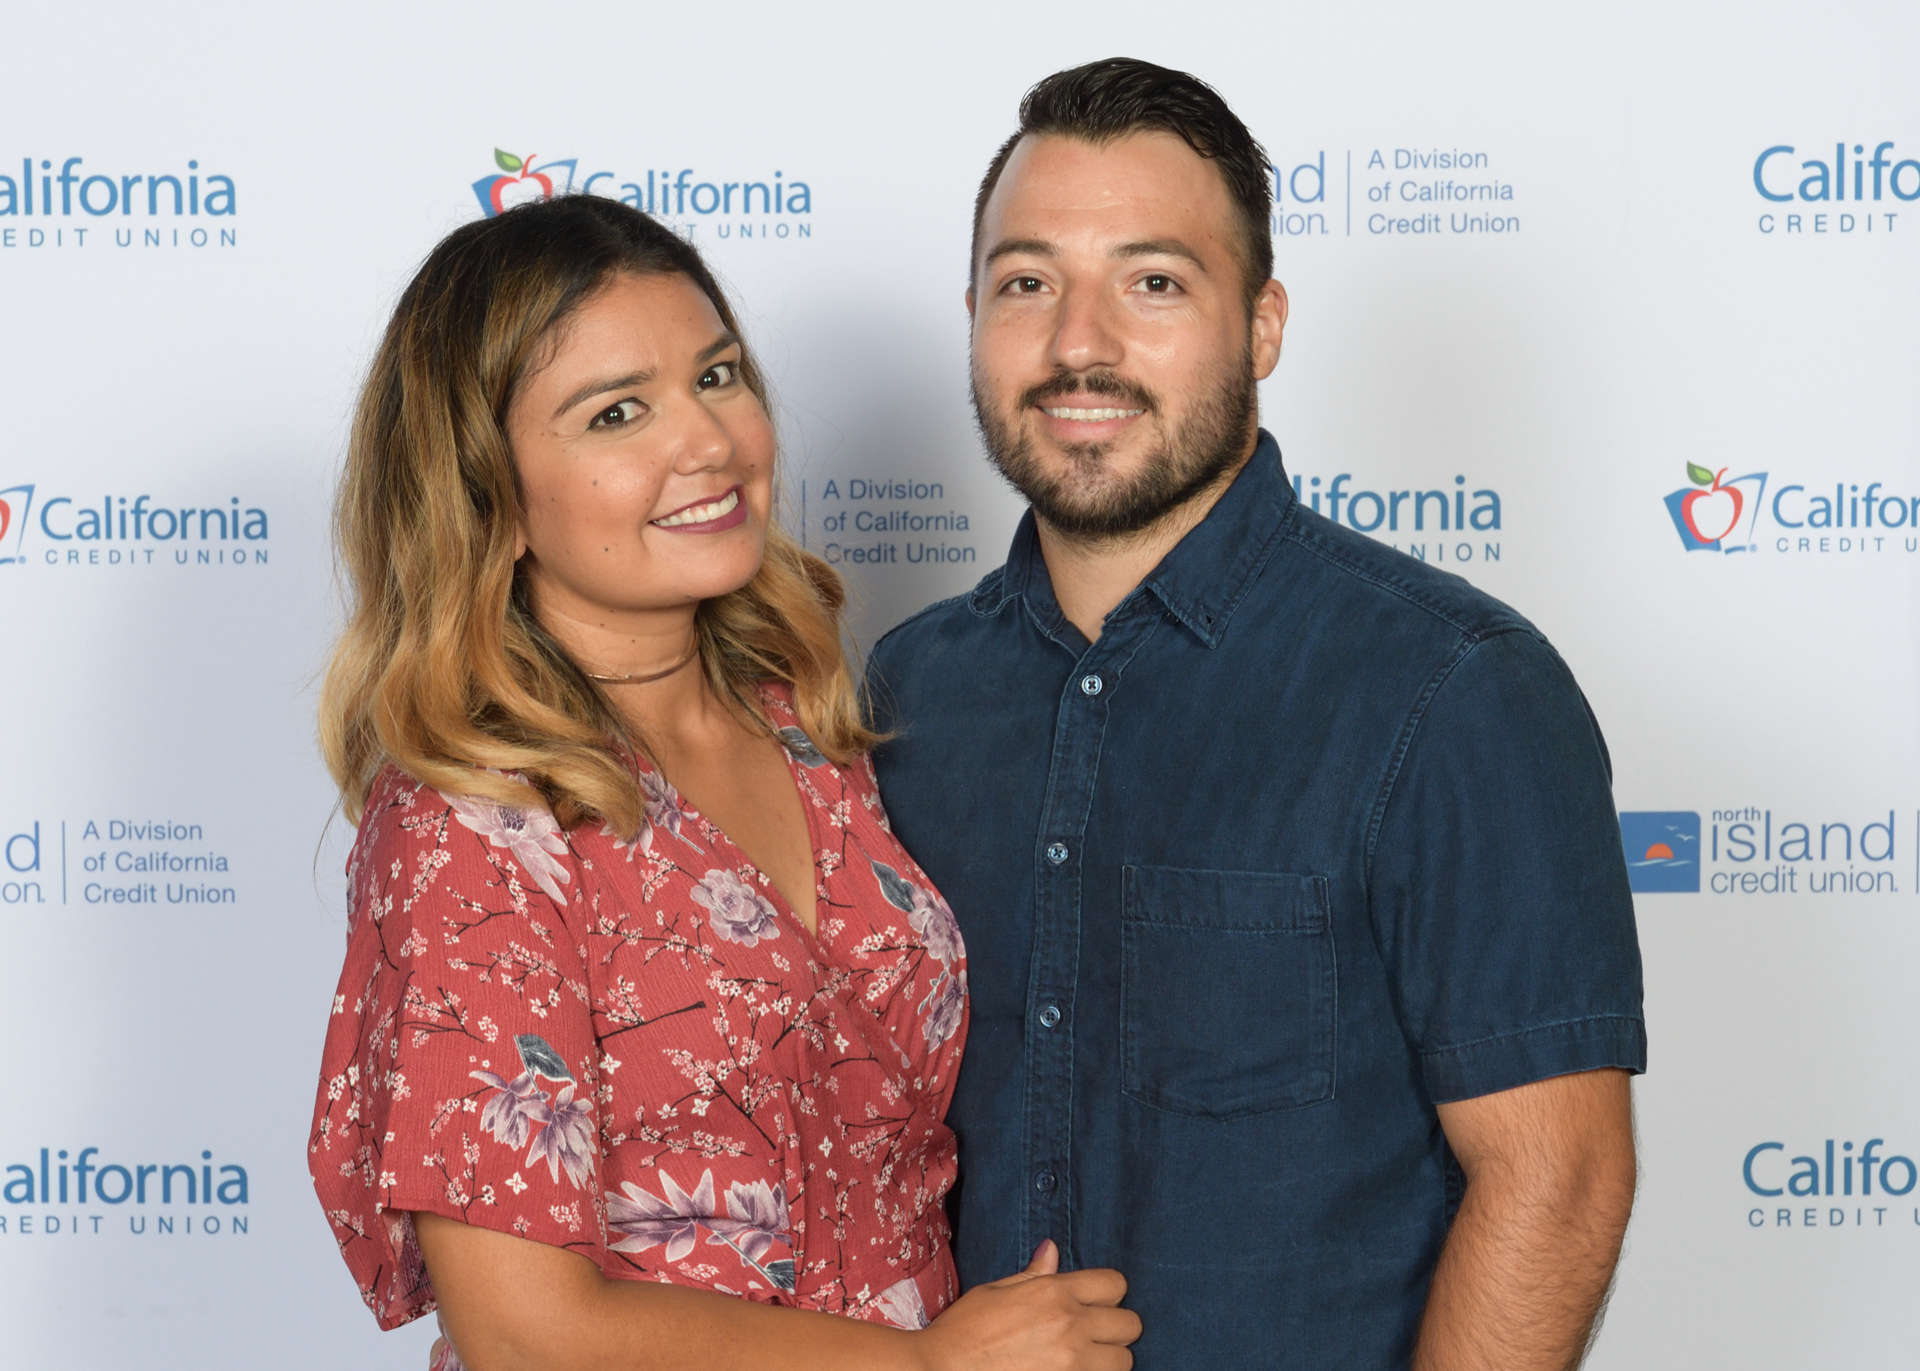 Couple at California Credit Union annual meeting